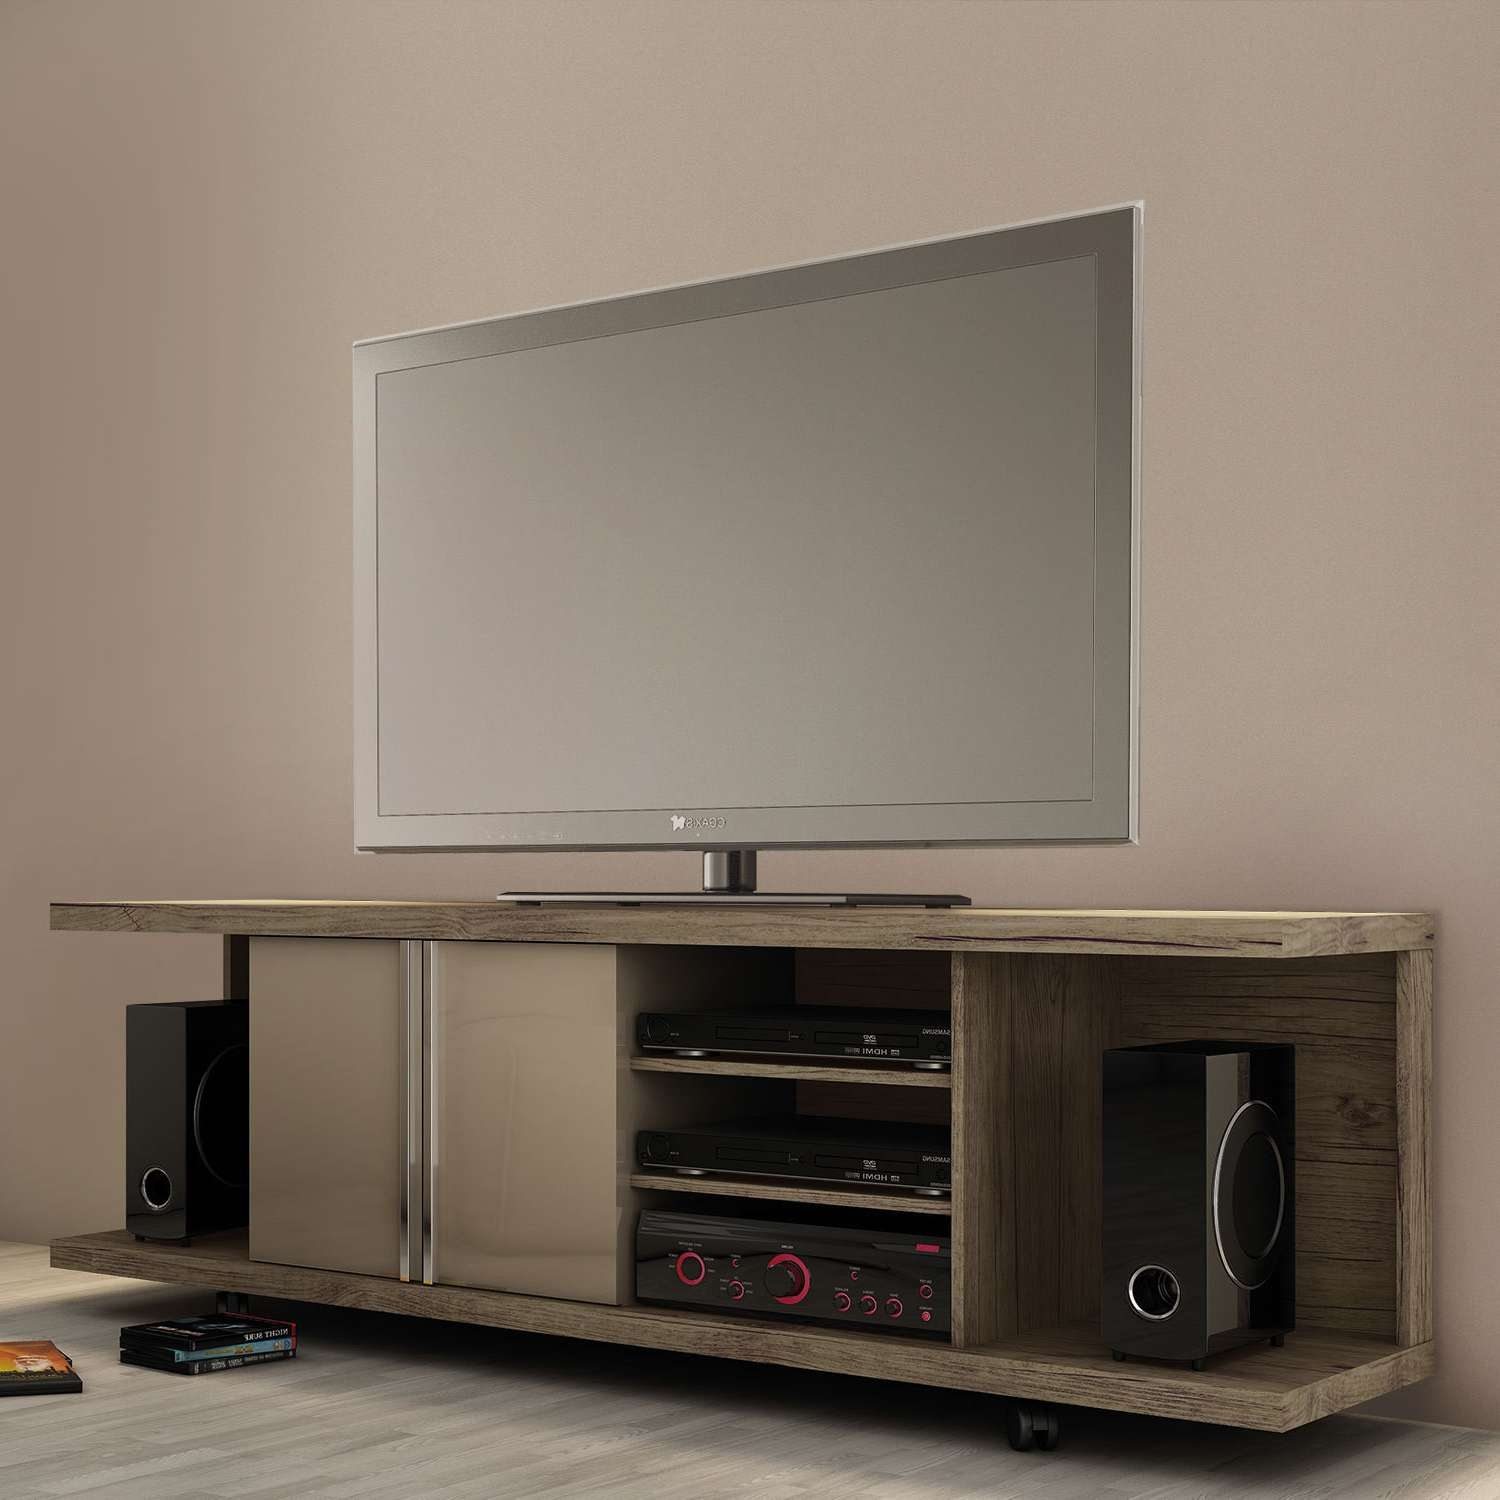 Fancy All Tv Stands Wayfair Toger Together With Maroneia Stand With Regard To Fancy Tv Stands (View 13 of 15)